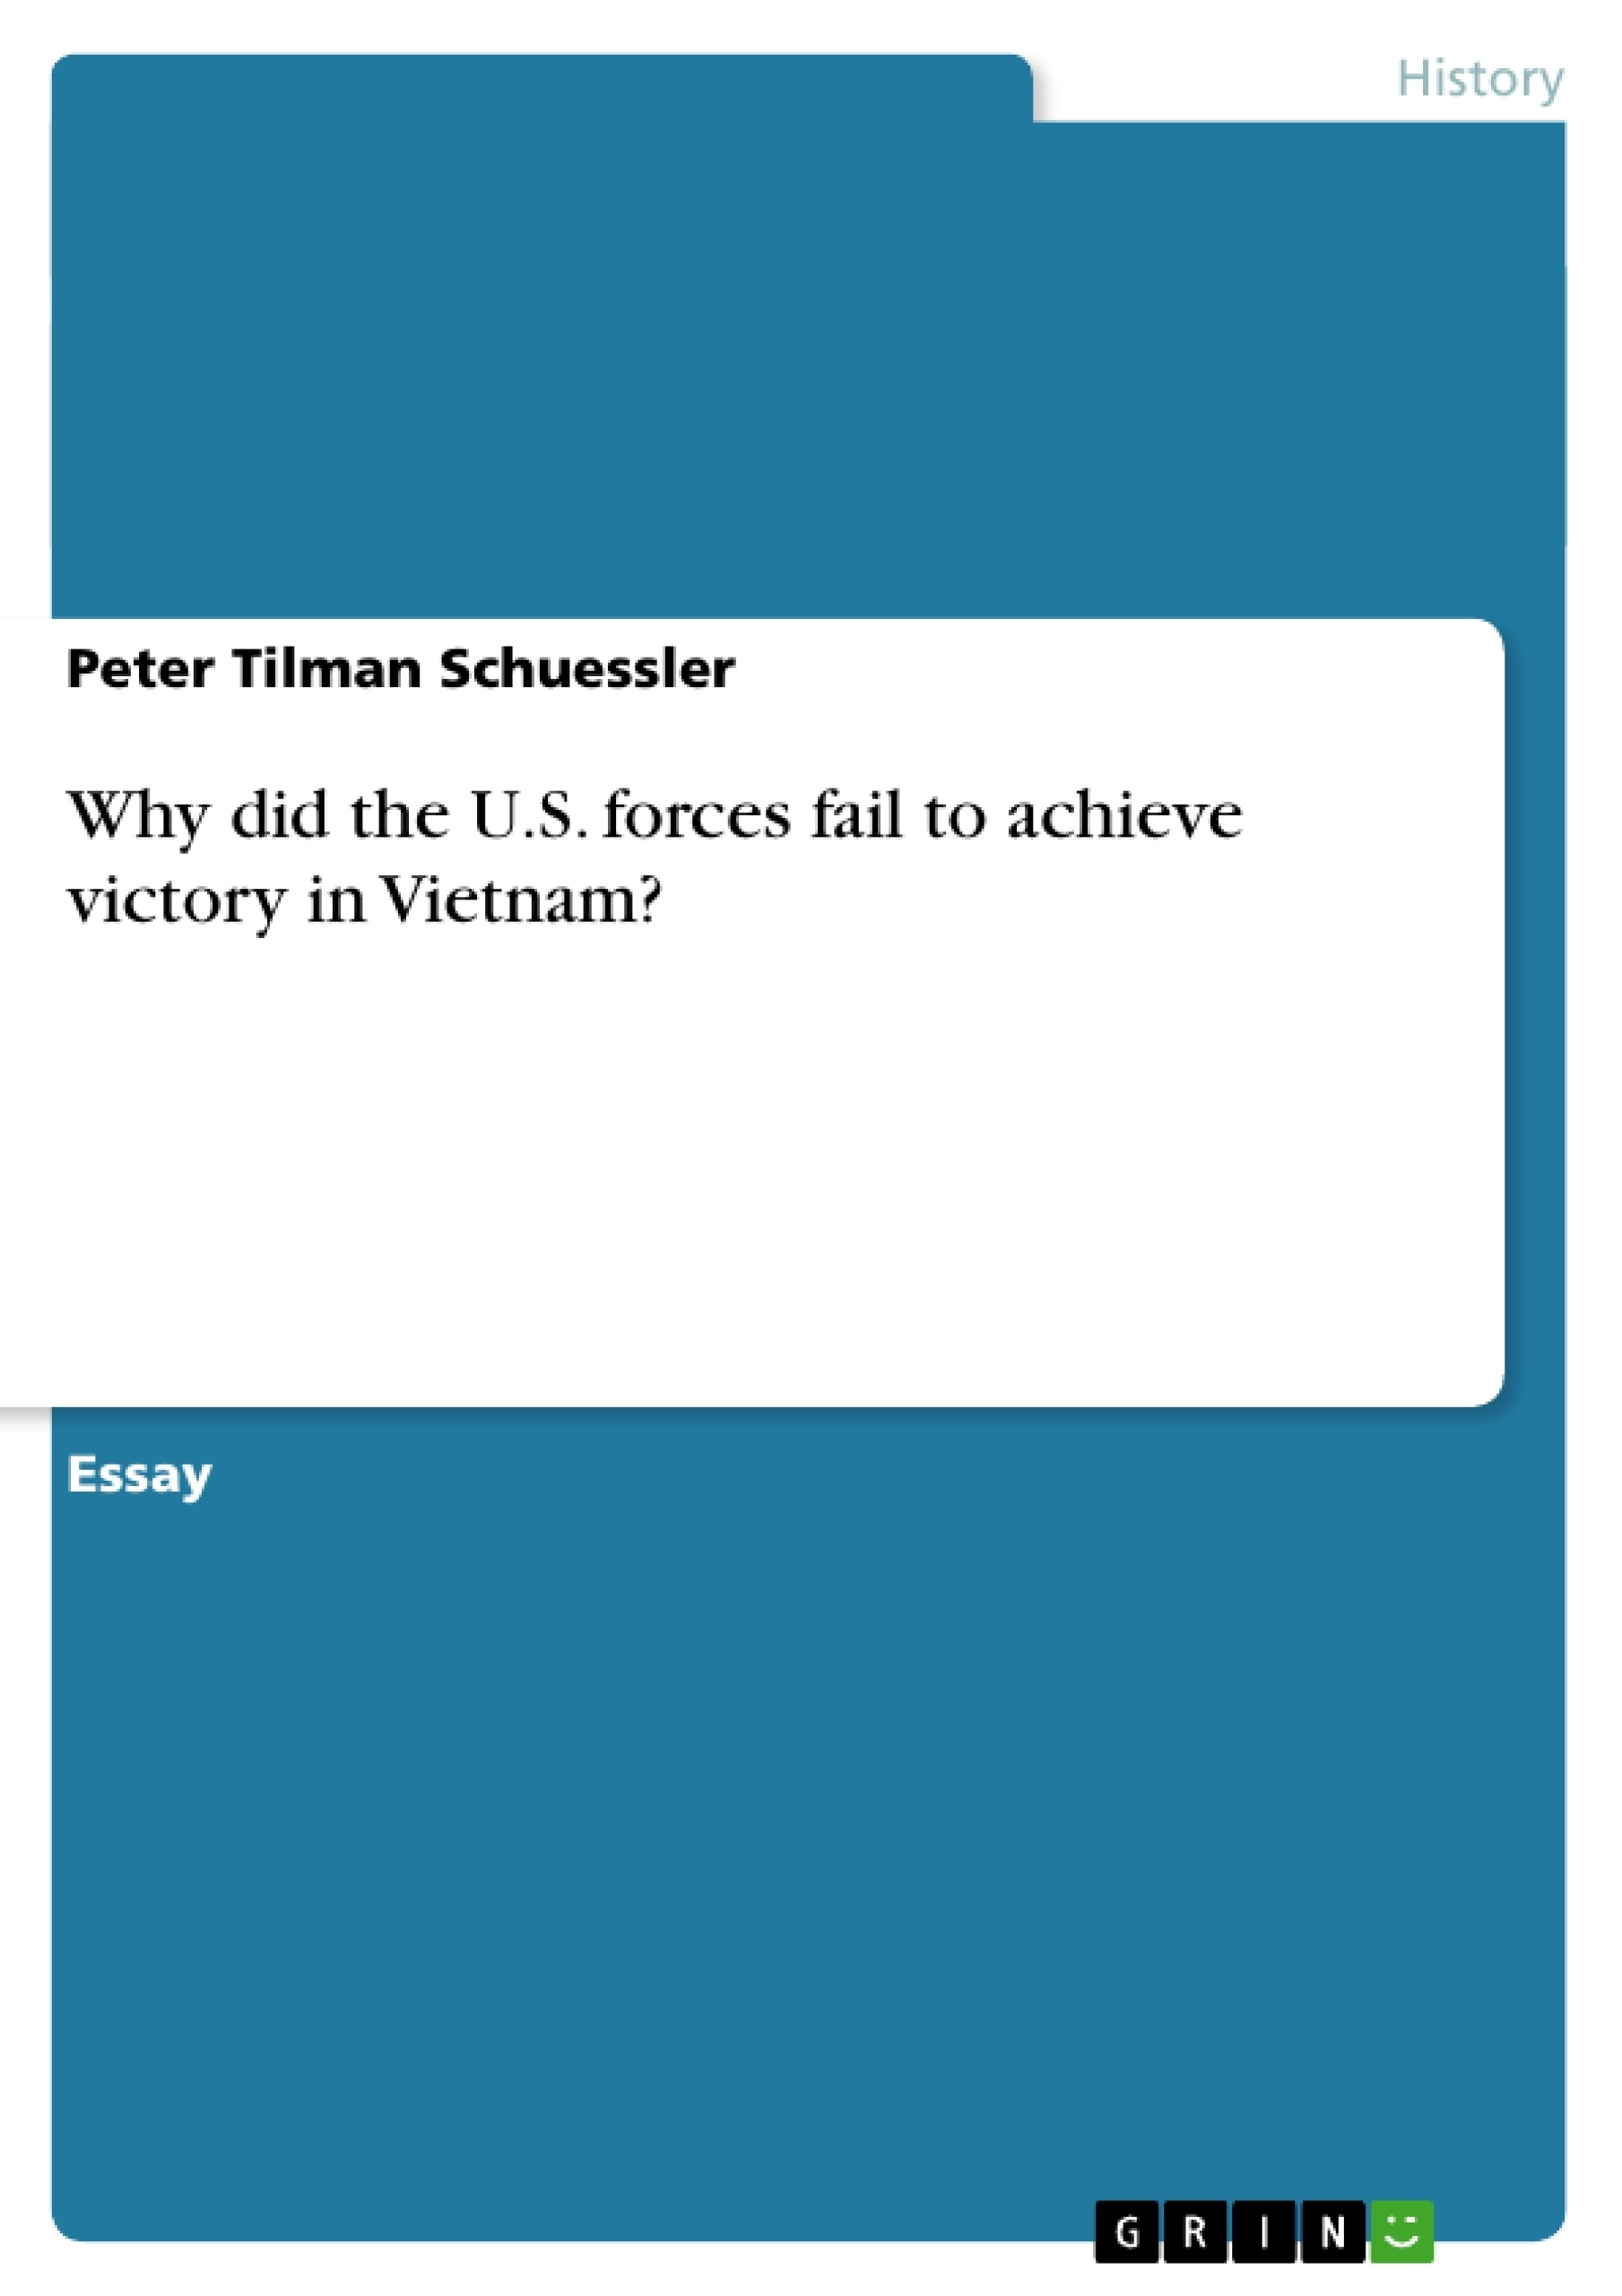 Title: Why did the U.S. forces fail to achieve victory in Vietnam?